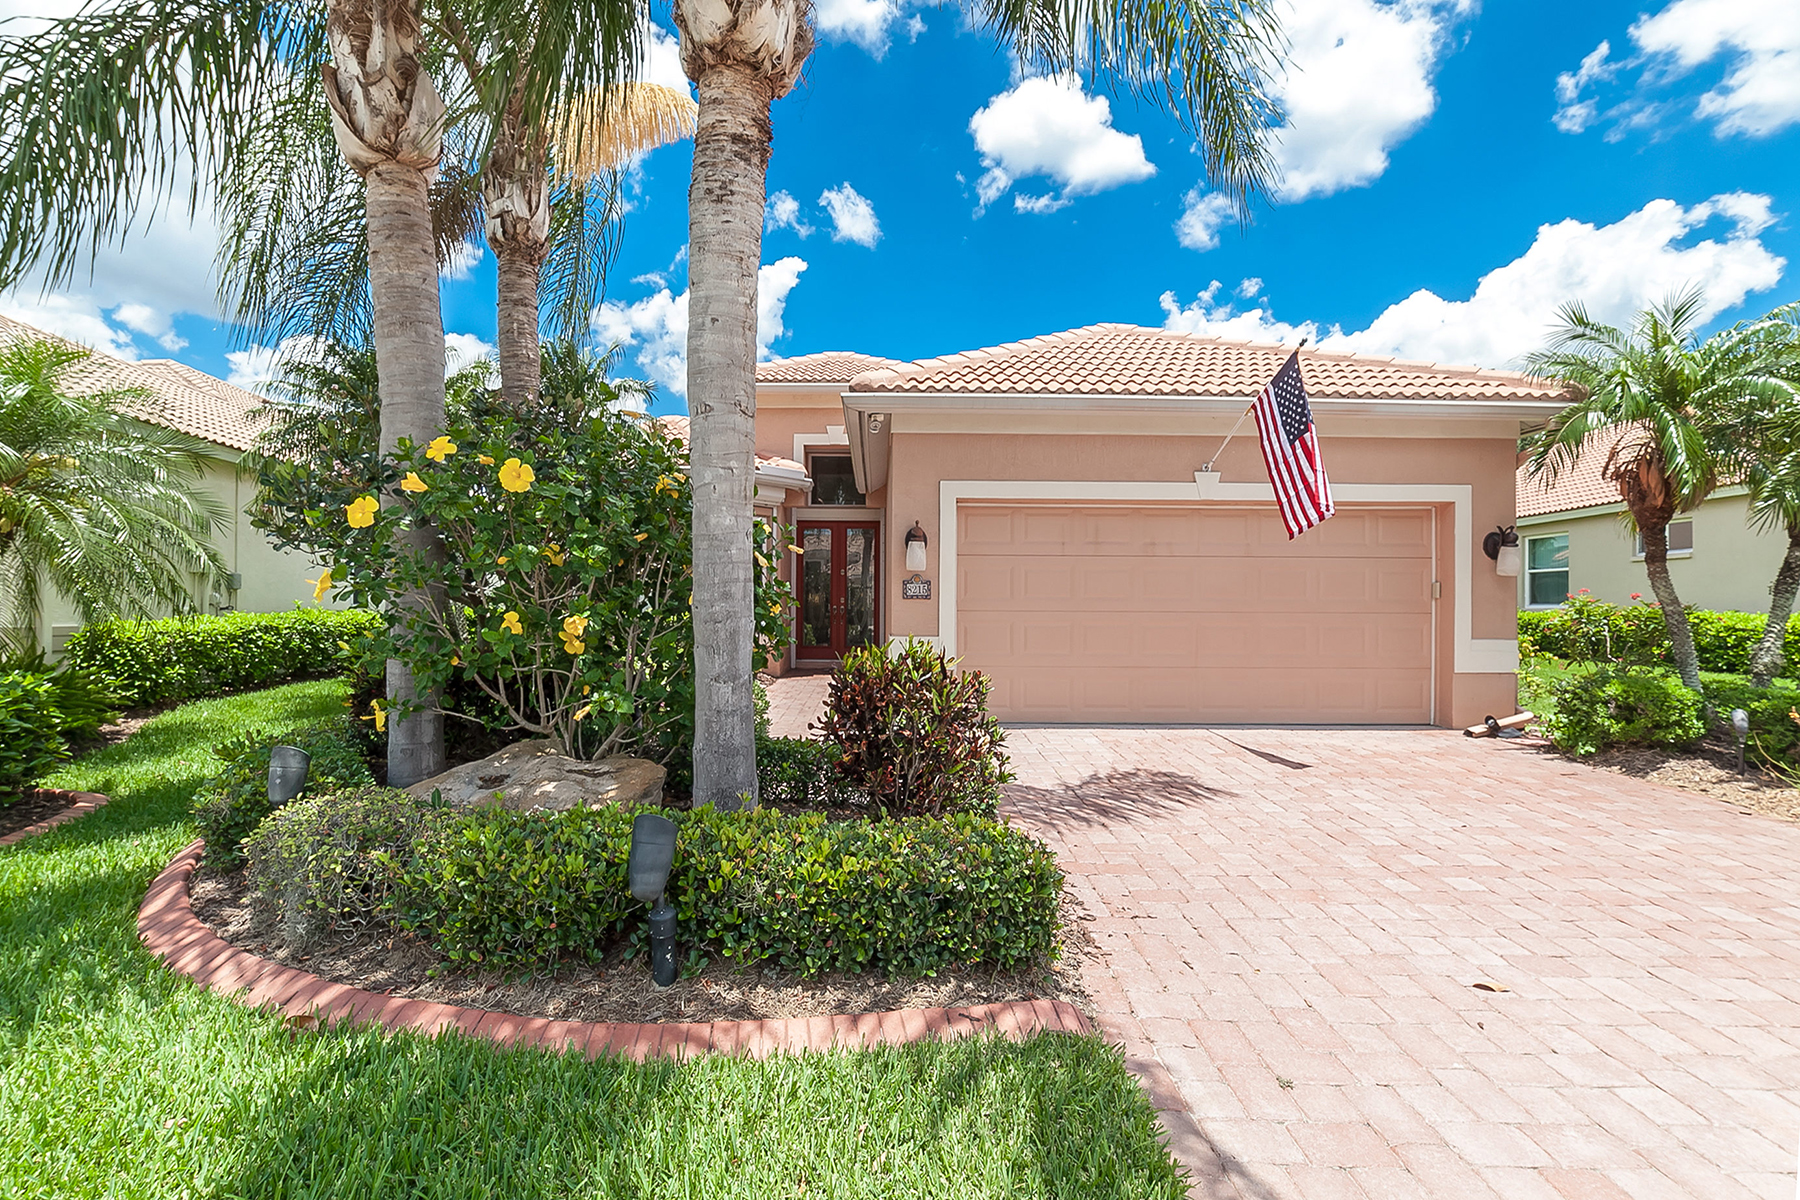 Single Family Home for Sale at TURTLE ROCK 8215 Nice Way Sarasota, Florida, 34238 United States